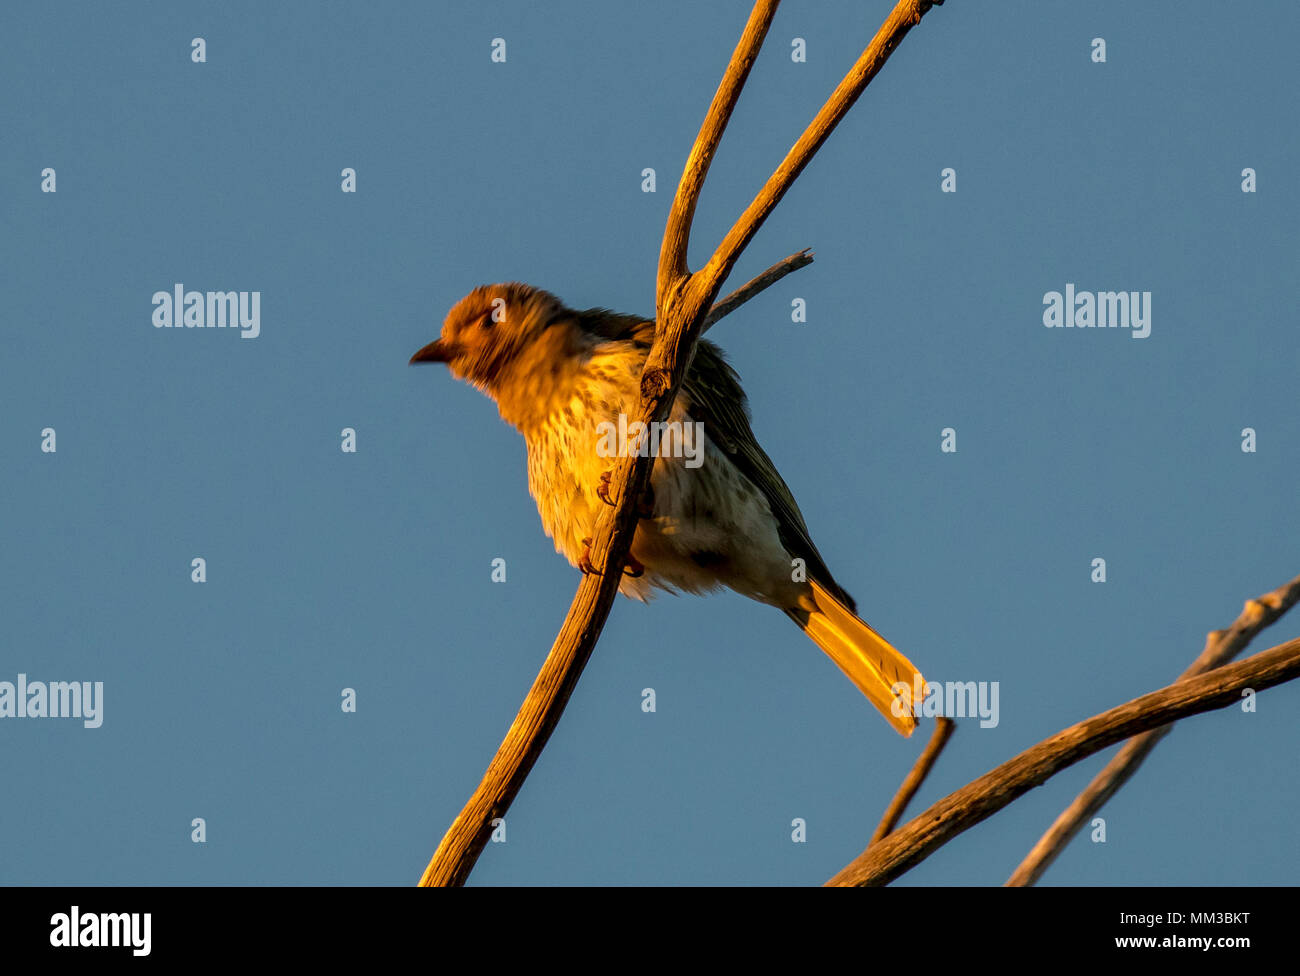 Fig Bird, Sphecotheres viridis Stock Photo